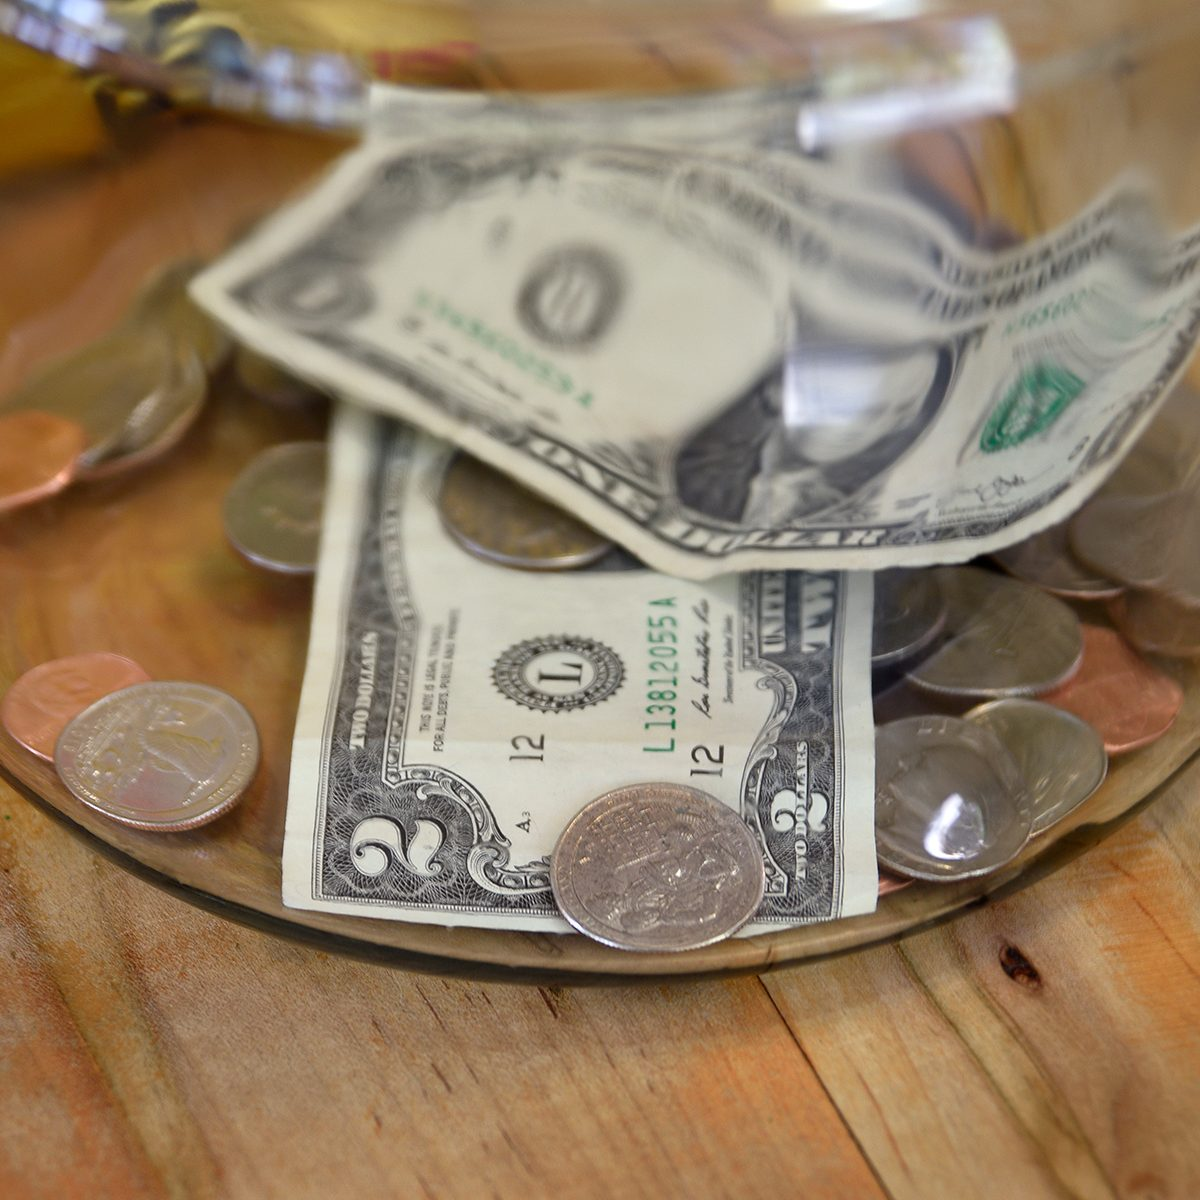 TAOS, NEW MEXICO - MAY 15, 2019: Money in a tip jar in a Taos, New Mexico, coffee shop includes a two dollar bill. (Photo by Robert Alexander/Getty Images)